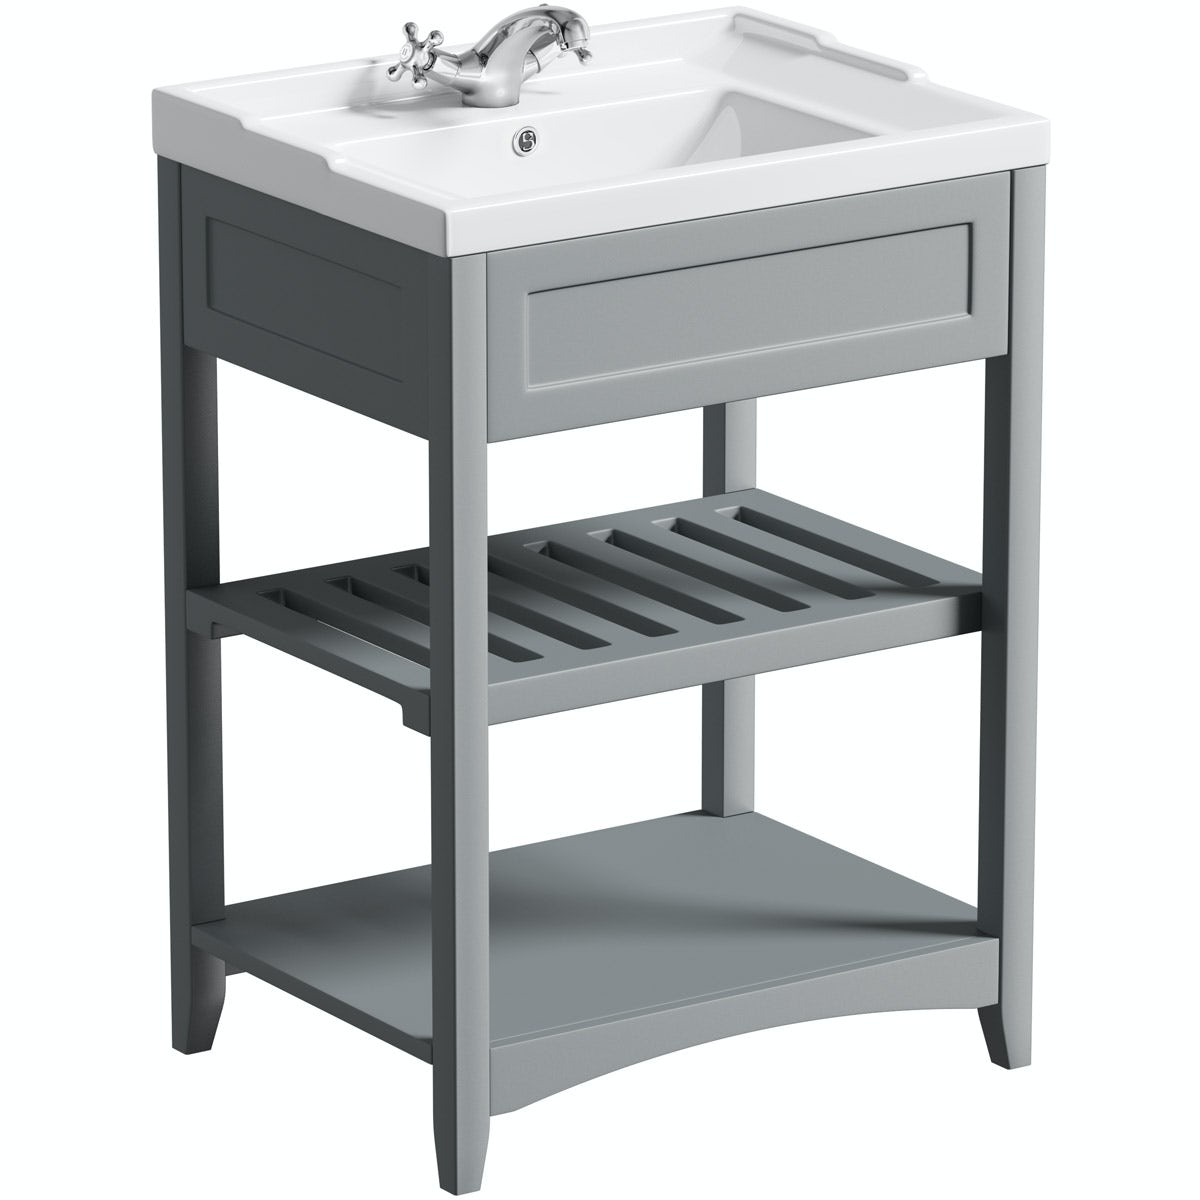 The Bath Co. Camberley satin grey washstand with traditional basin 600mm